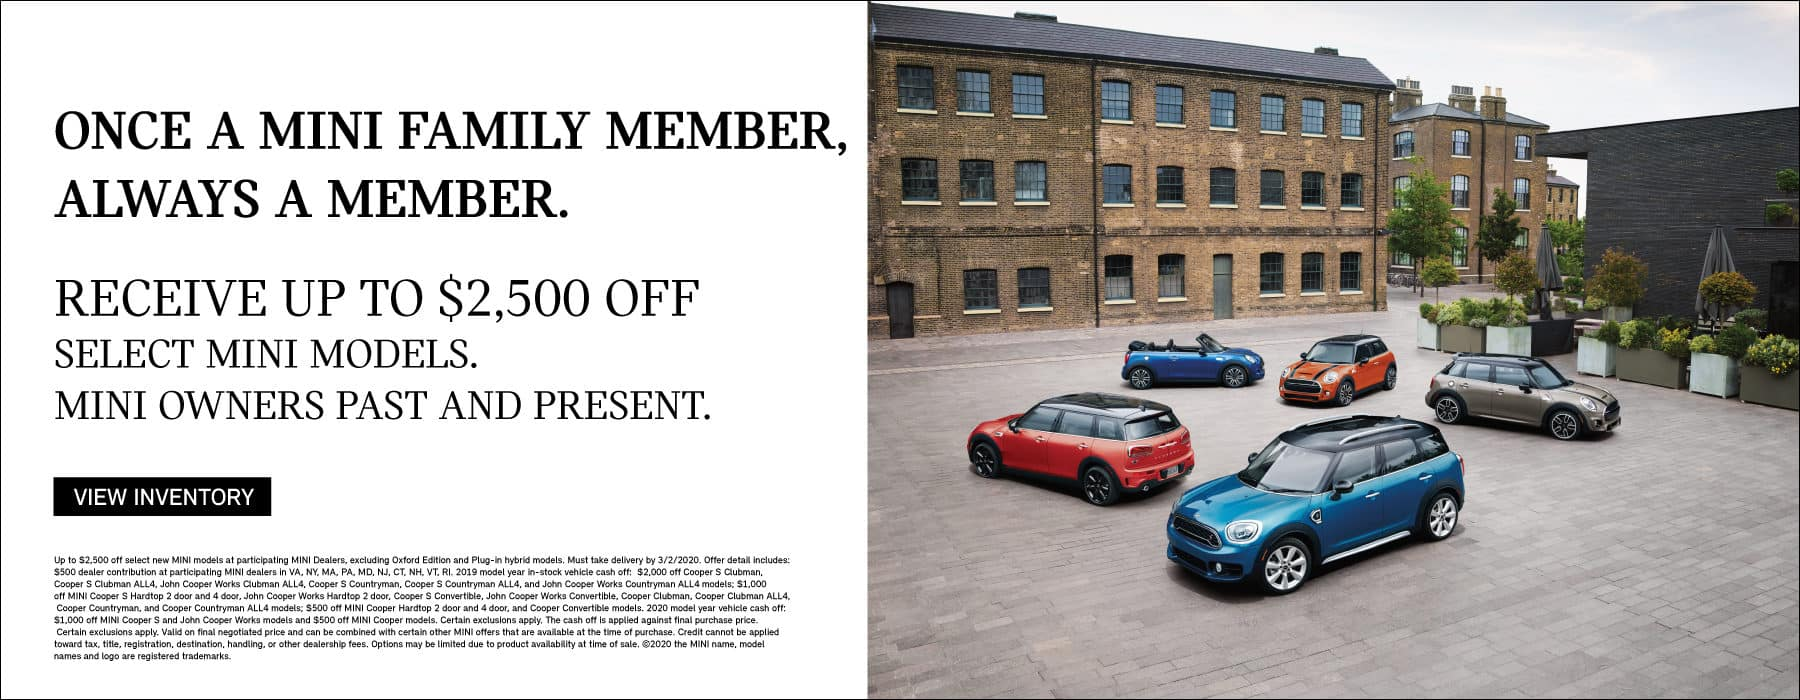 NCE A MINI FAMILY MEMBER, ALWAYS A MEMBER. Receive up to $2,500 off select MINI models. MINI owners past and present. Click to view inventory.